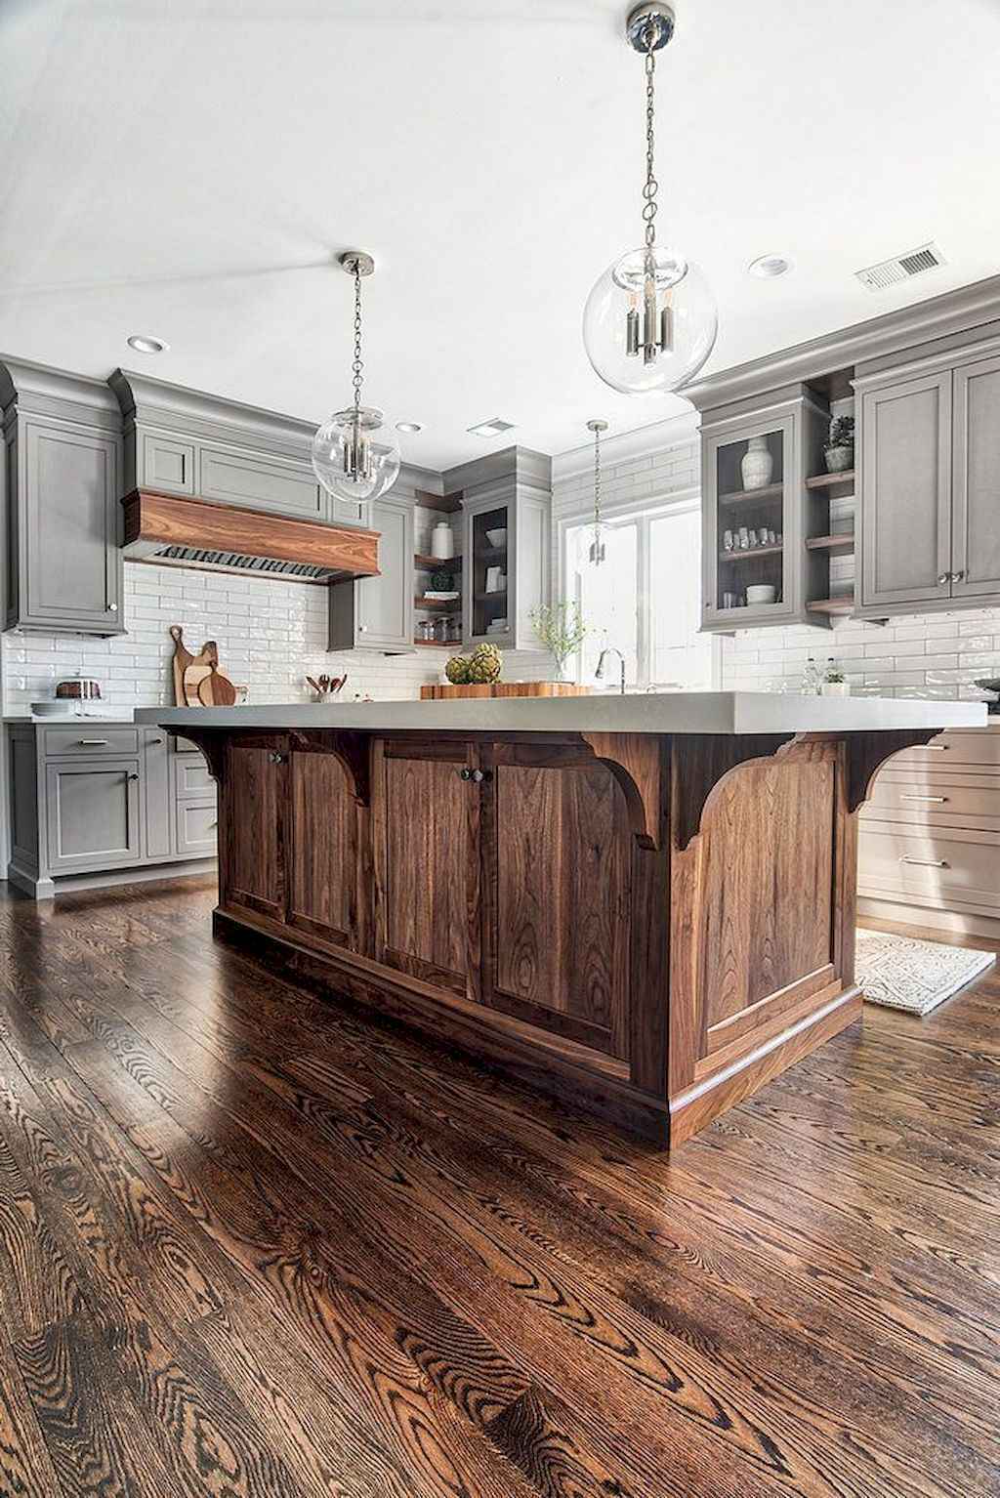 What Kitchen Colors Are In For 2020? – DianneDecor.com